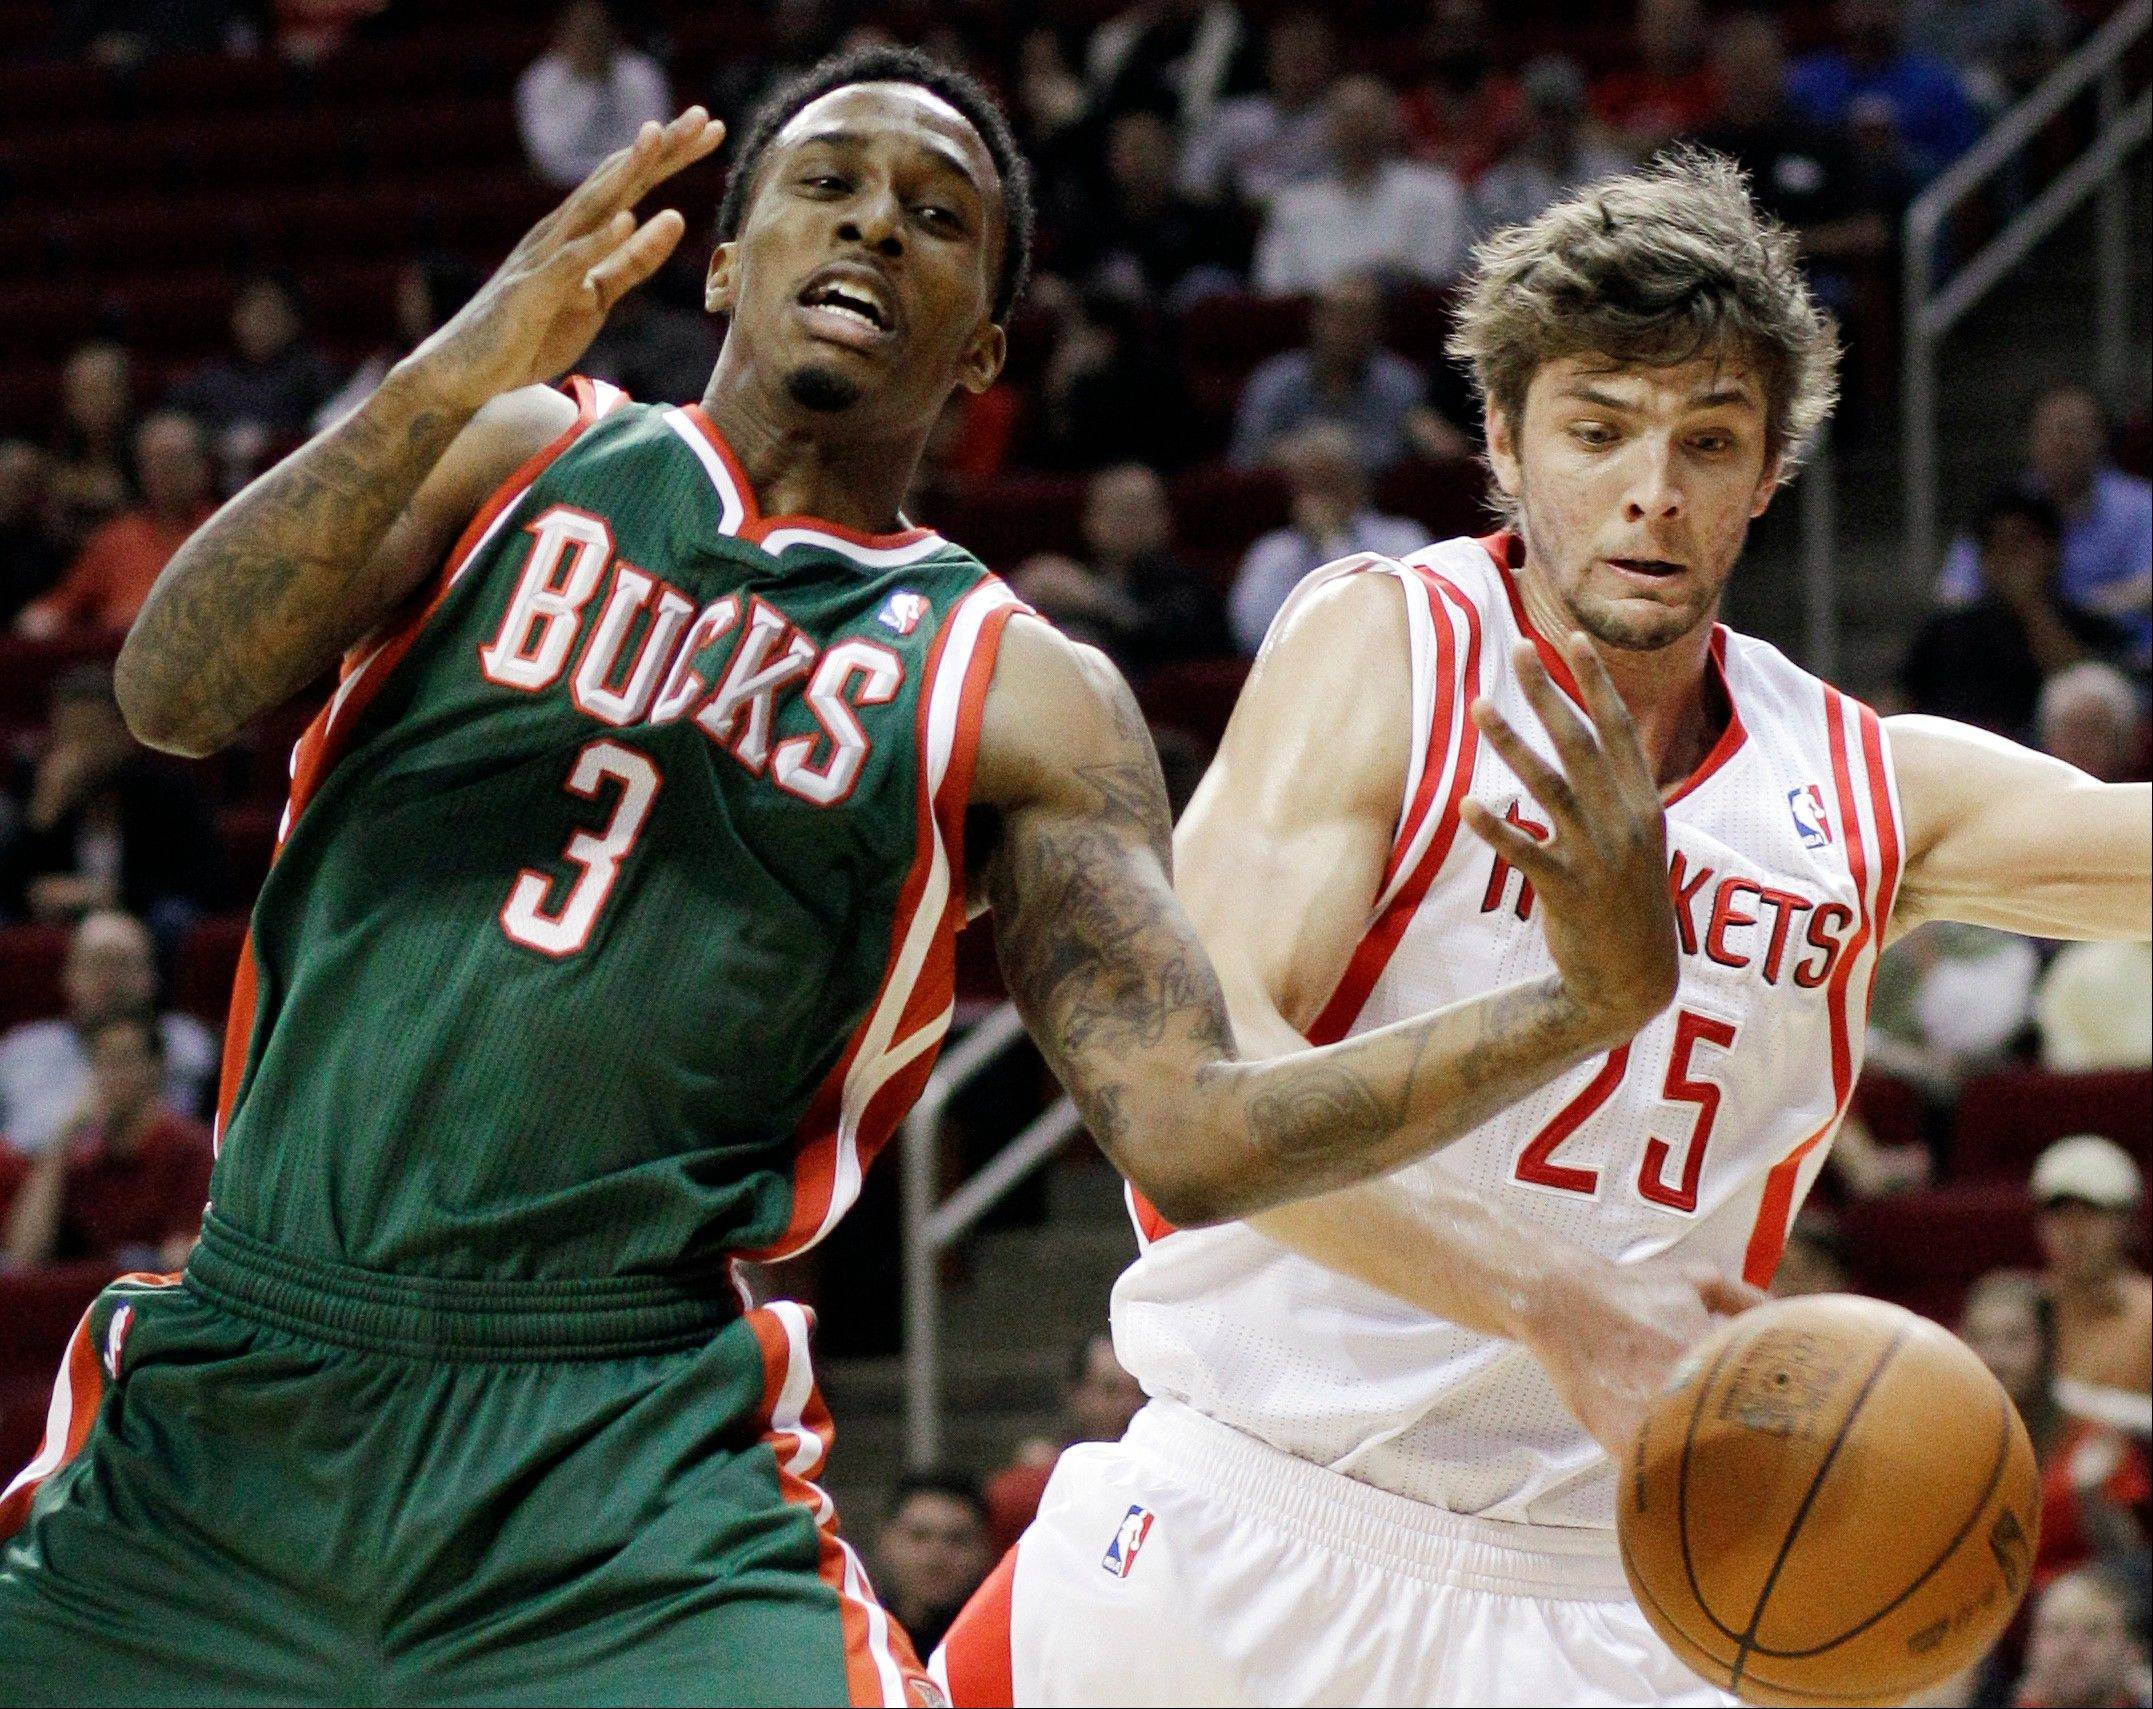 Milwaukee Bucks guard Brandon Jennings loses the ball on a steal Wednesday from the Houston Rockets' Chandler Parsons in the first half.